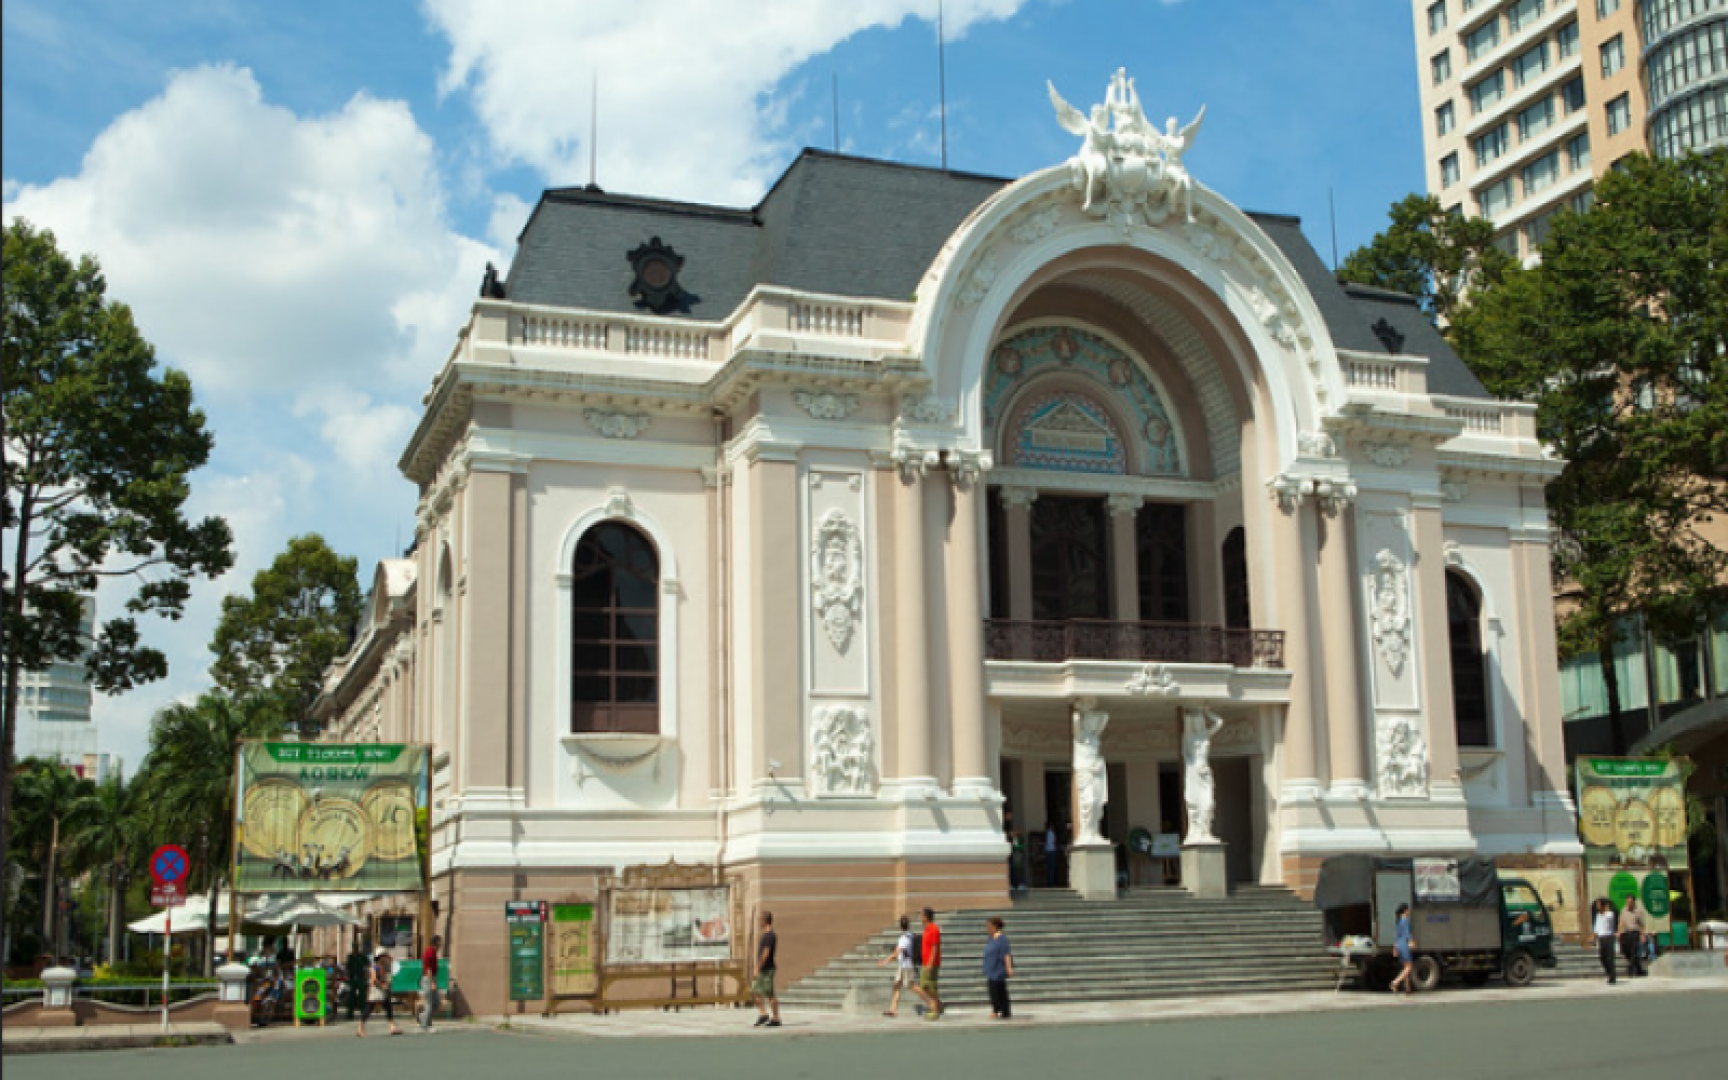 THE OPERA HOUSE IN HO CHI MINH CITY